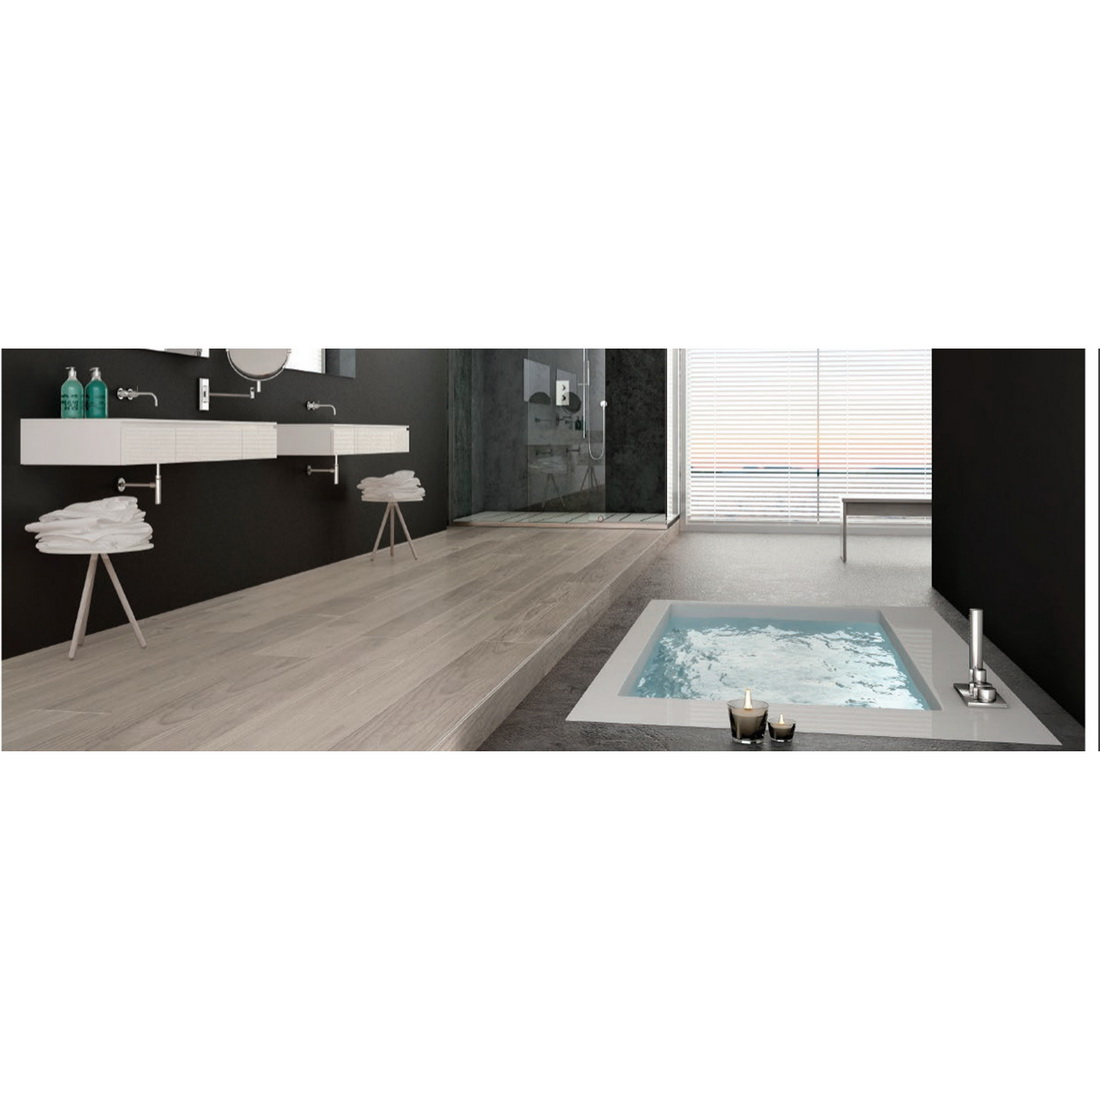 Strata Residential 1210 x 190mm x 5.5M Waterproof Flooring Plank Mighty Oak Frost